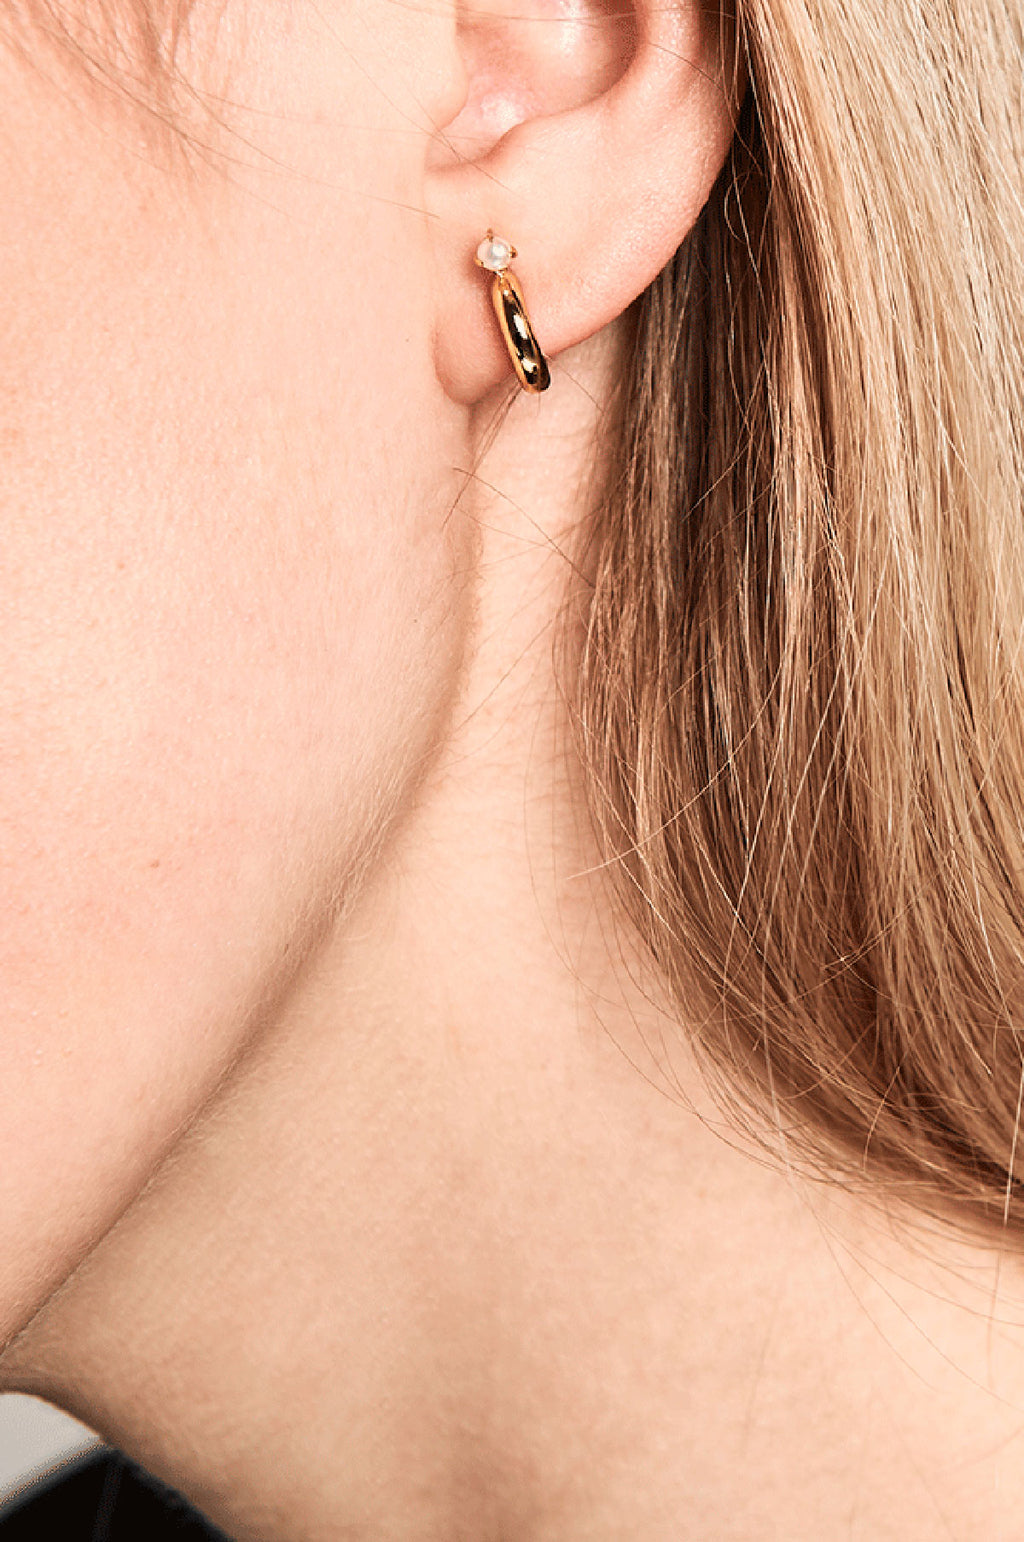 Anne Gold Earrings